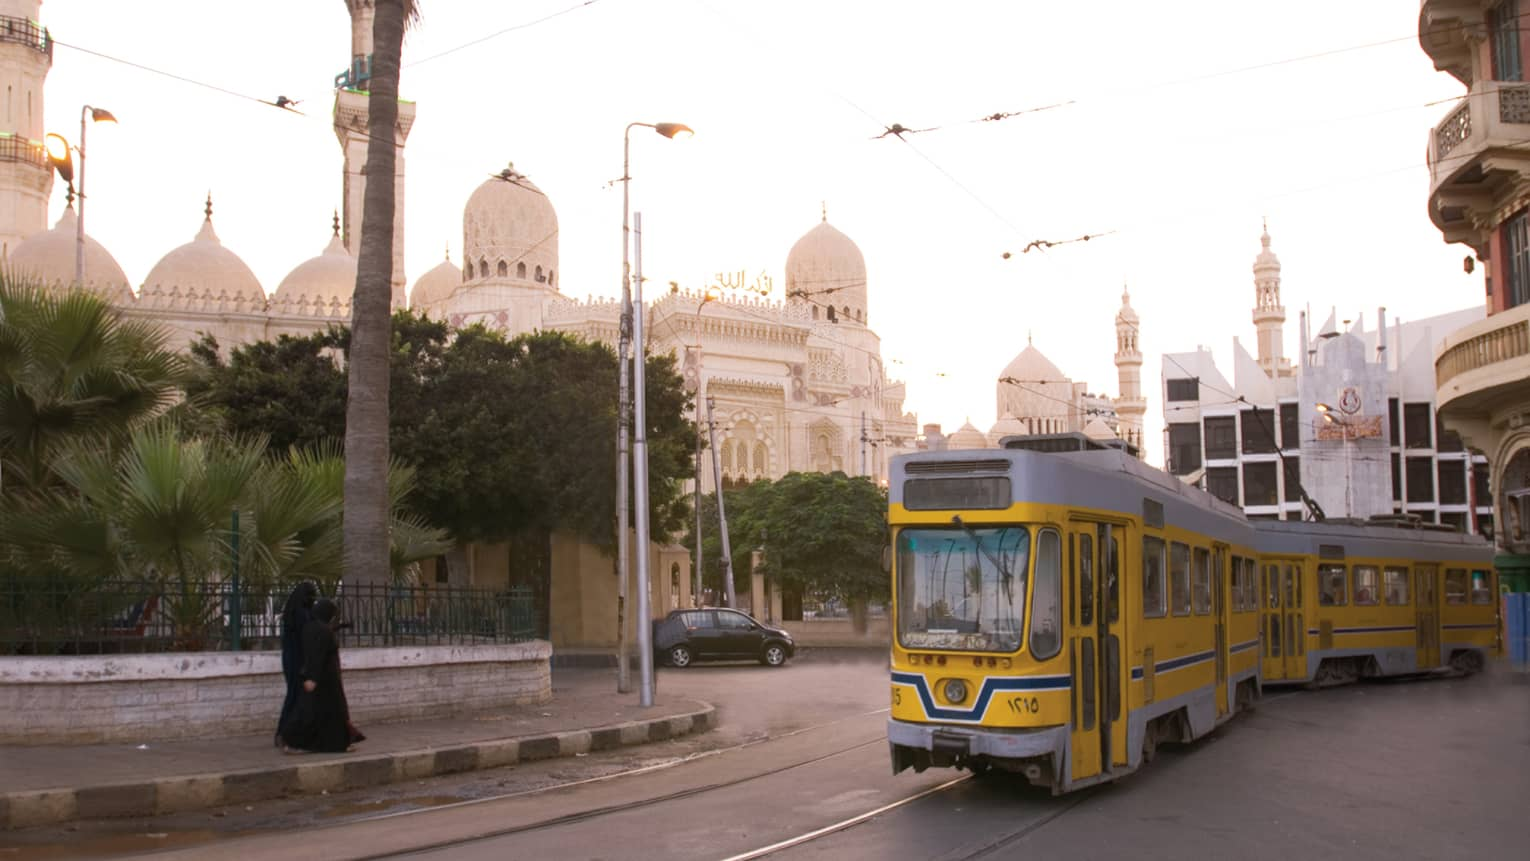 Yellow trolley car on track in front of El-Mursi Abul Abbas Mosque on sunny day